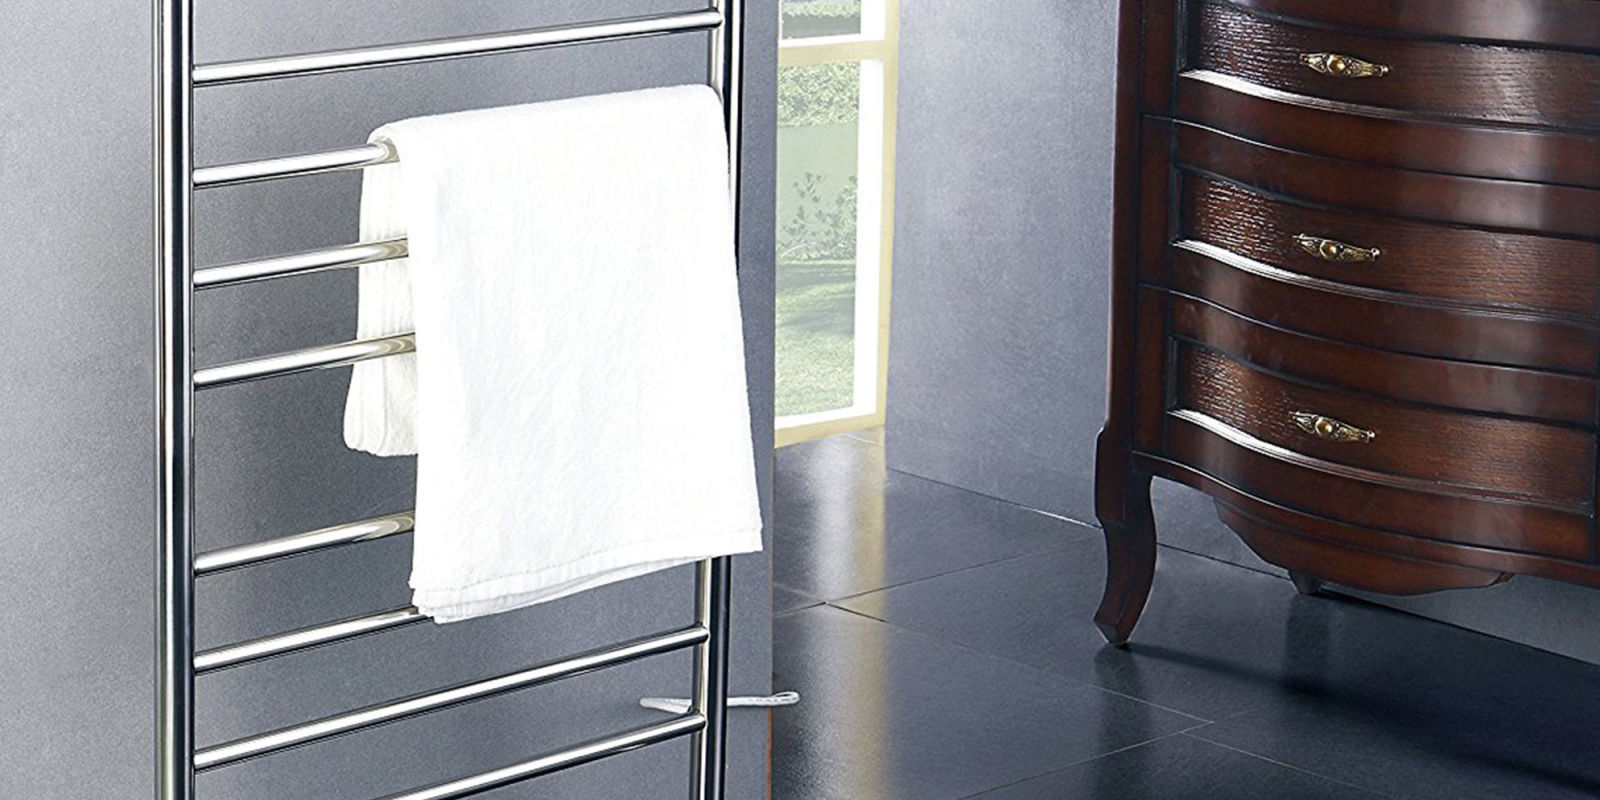 11 Best Electric Towel Warmers For 2018 Reviews Of Towel